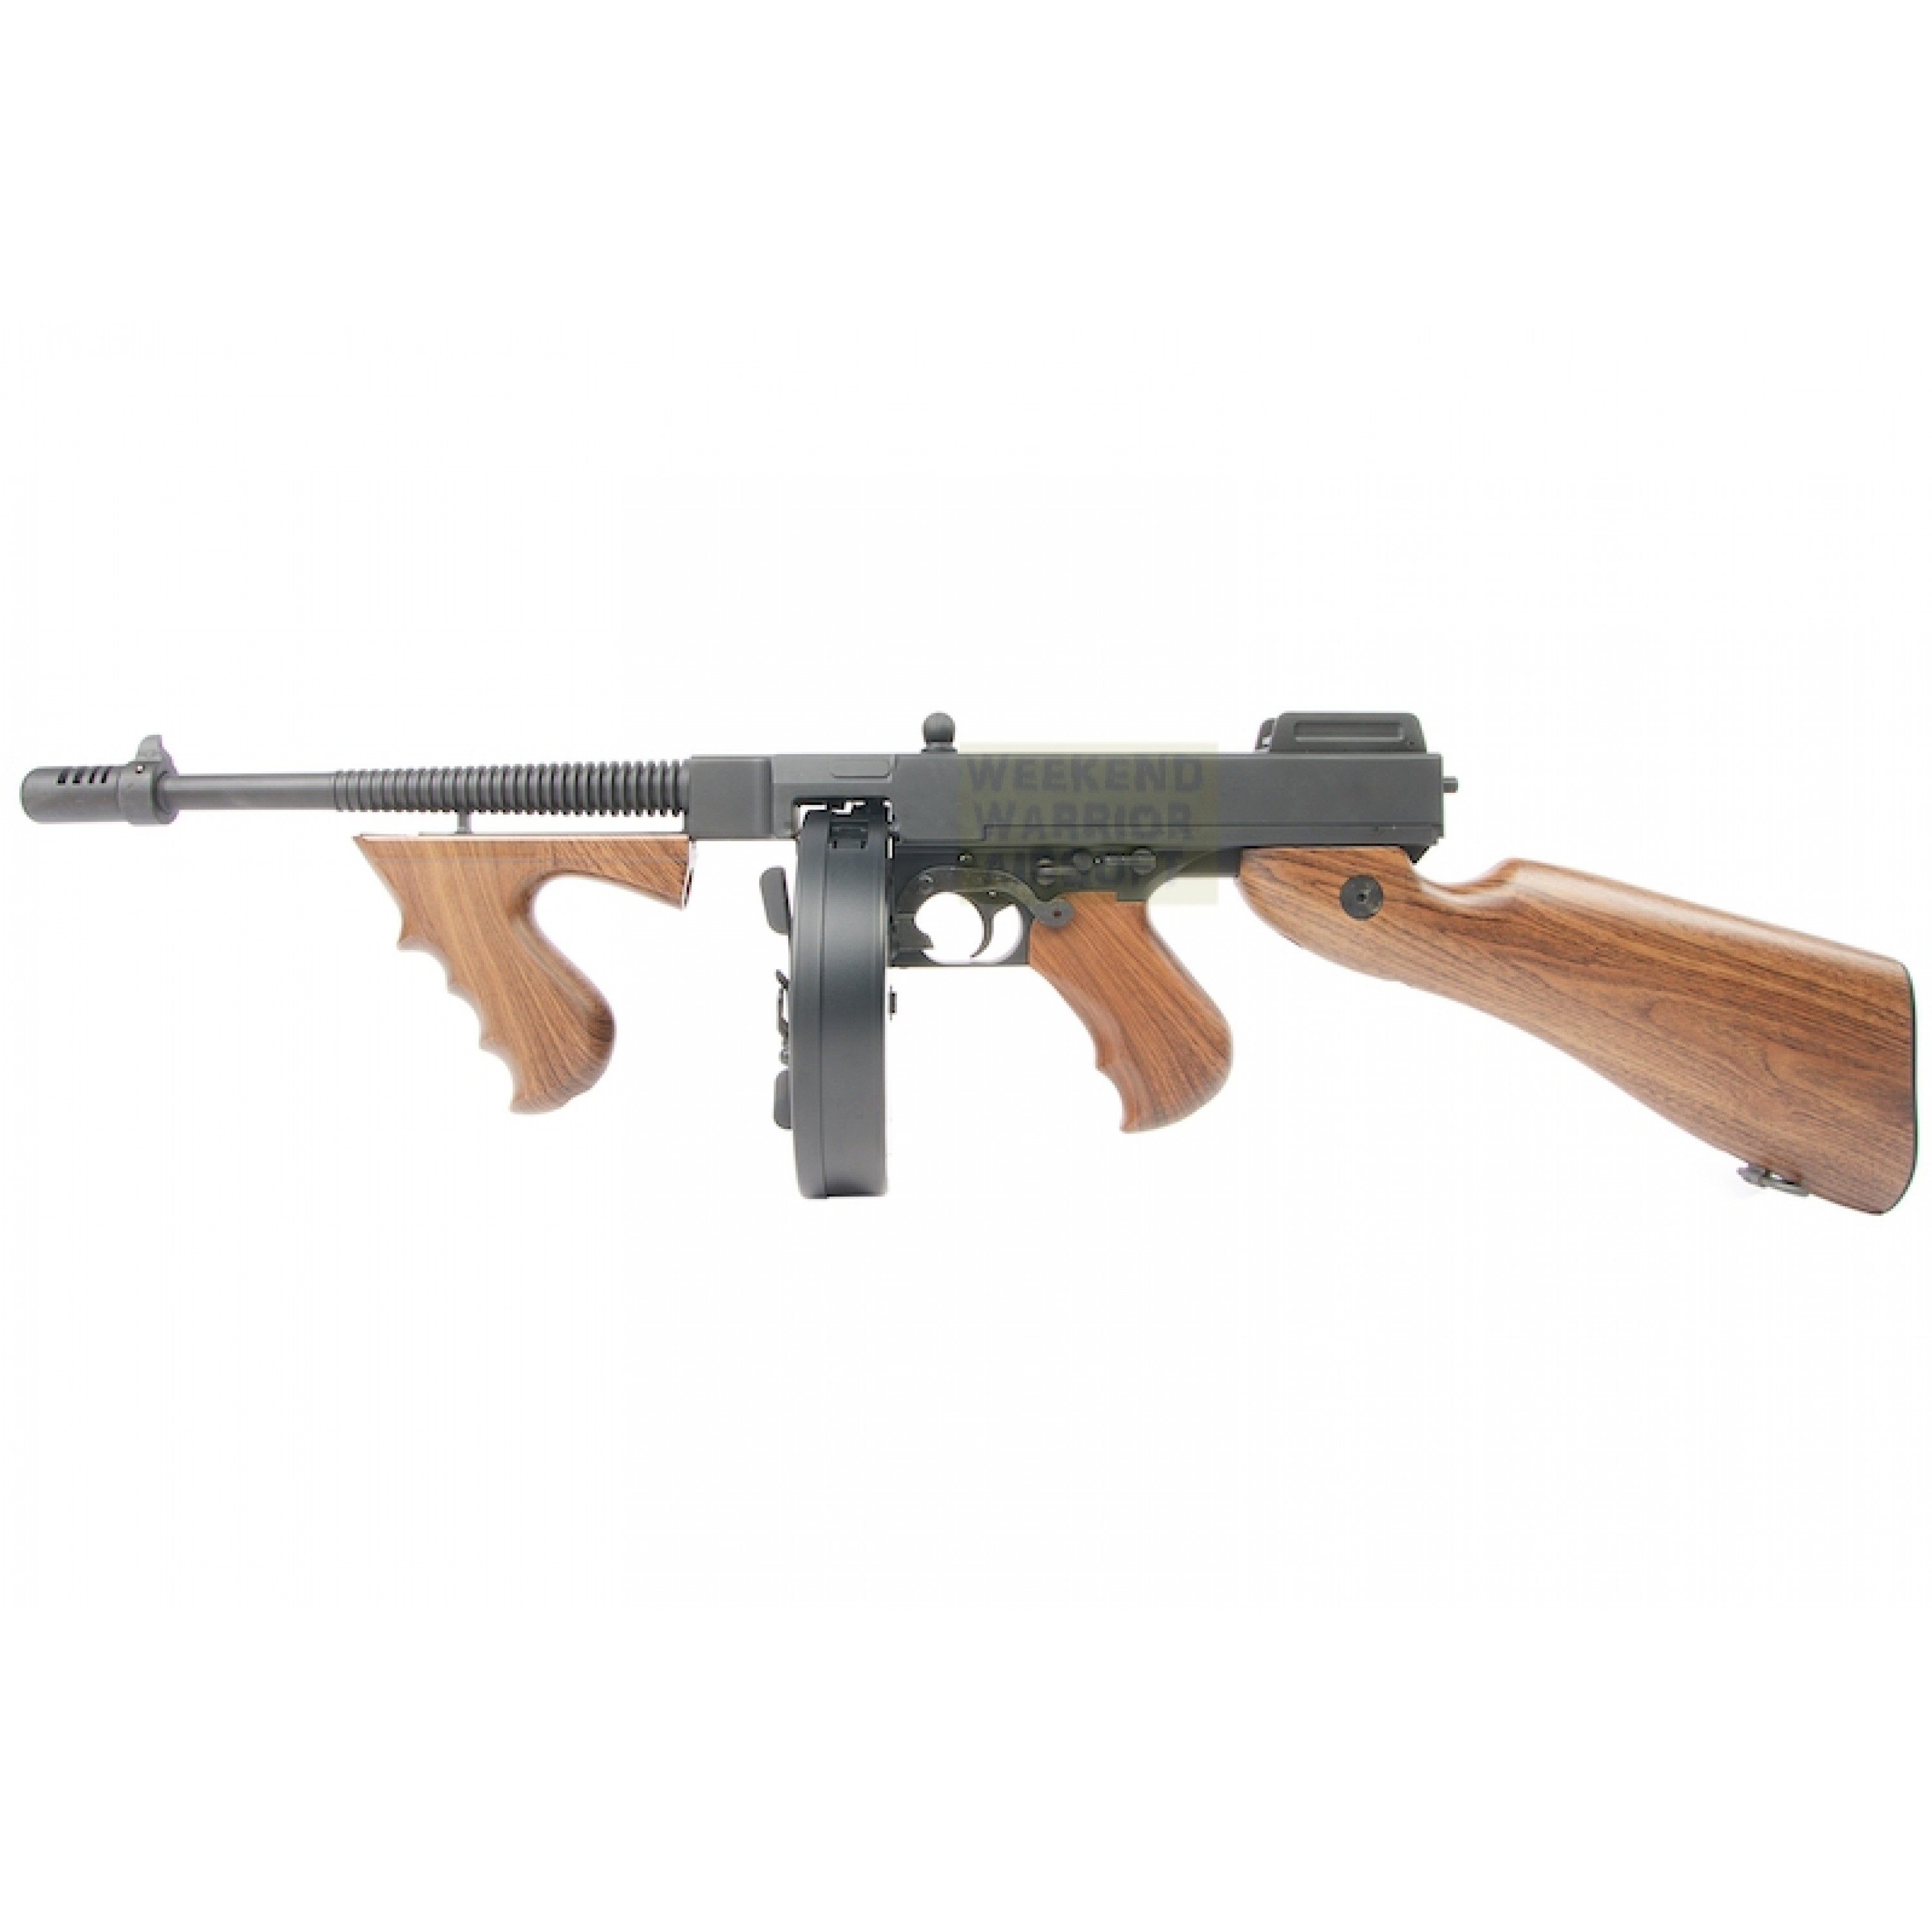 King Arms M1928 Chicago - Faux Wood Pattern